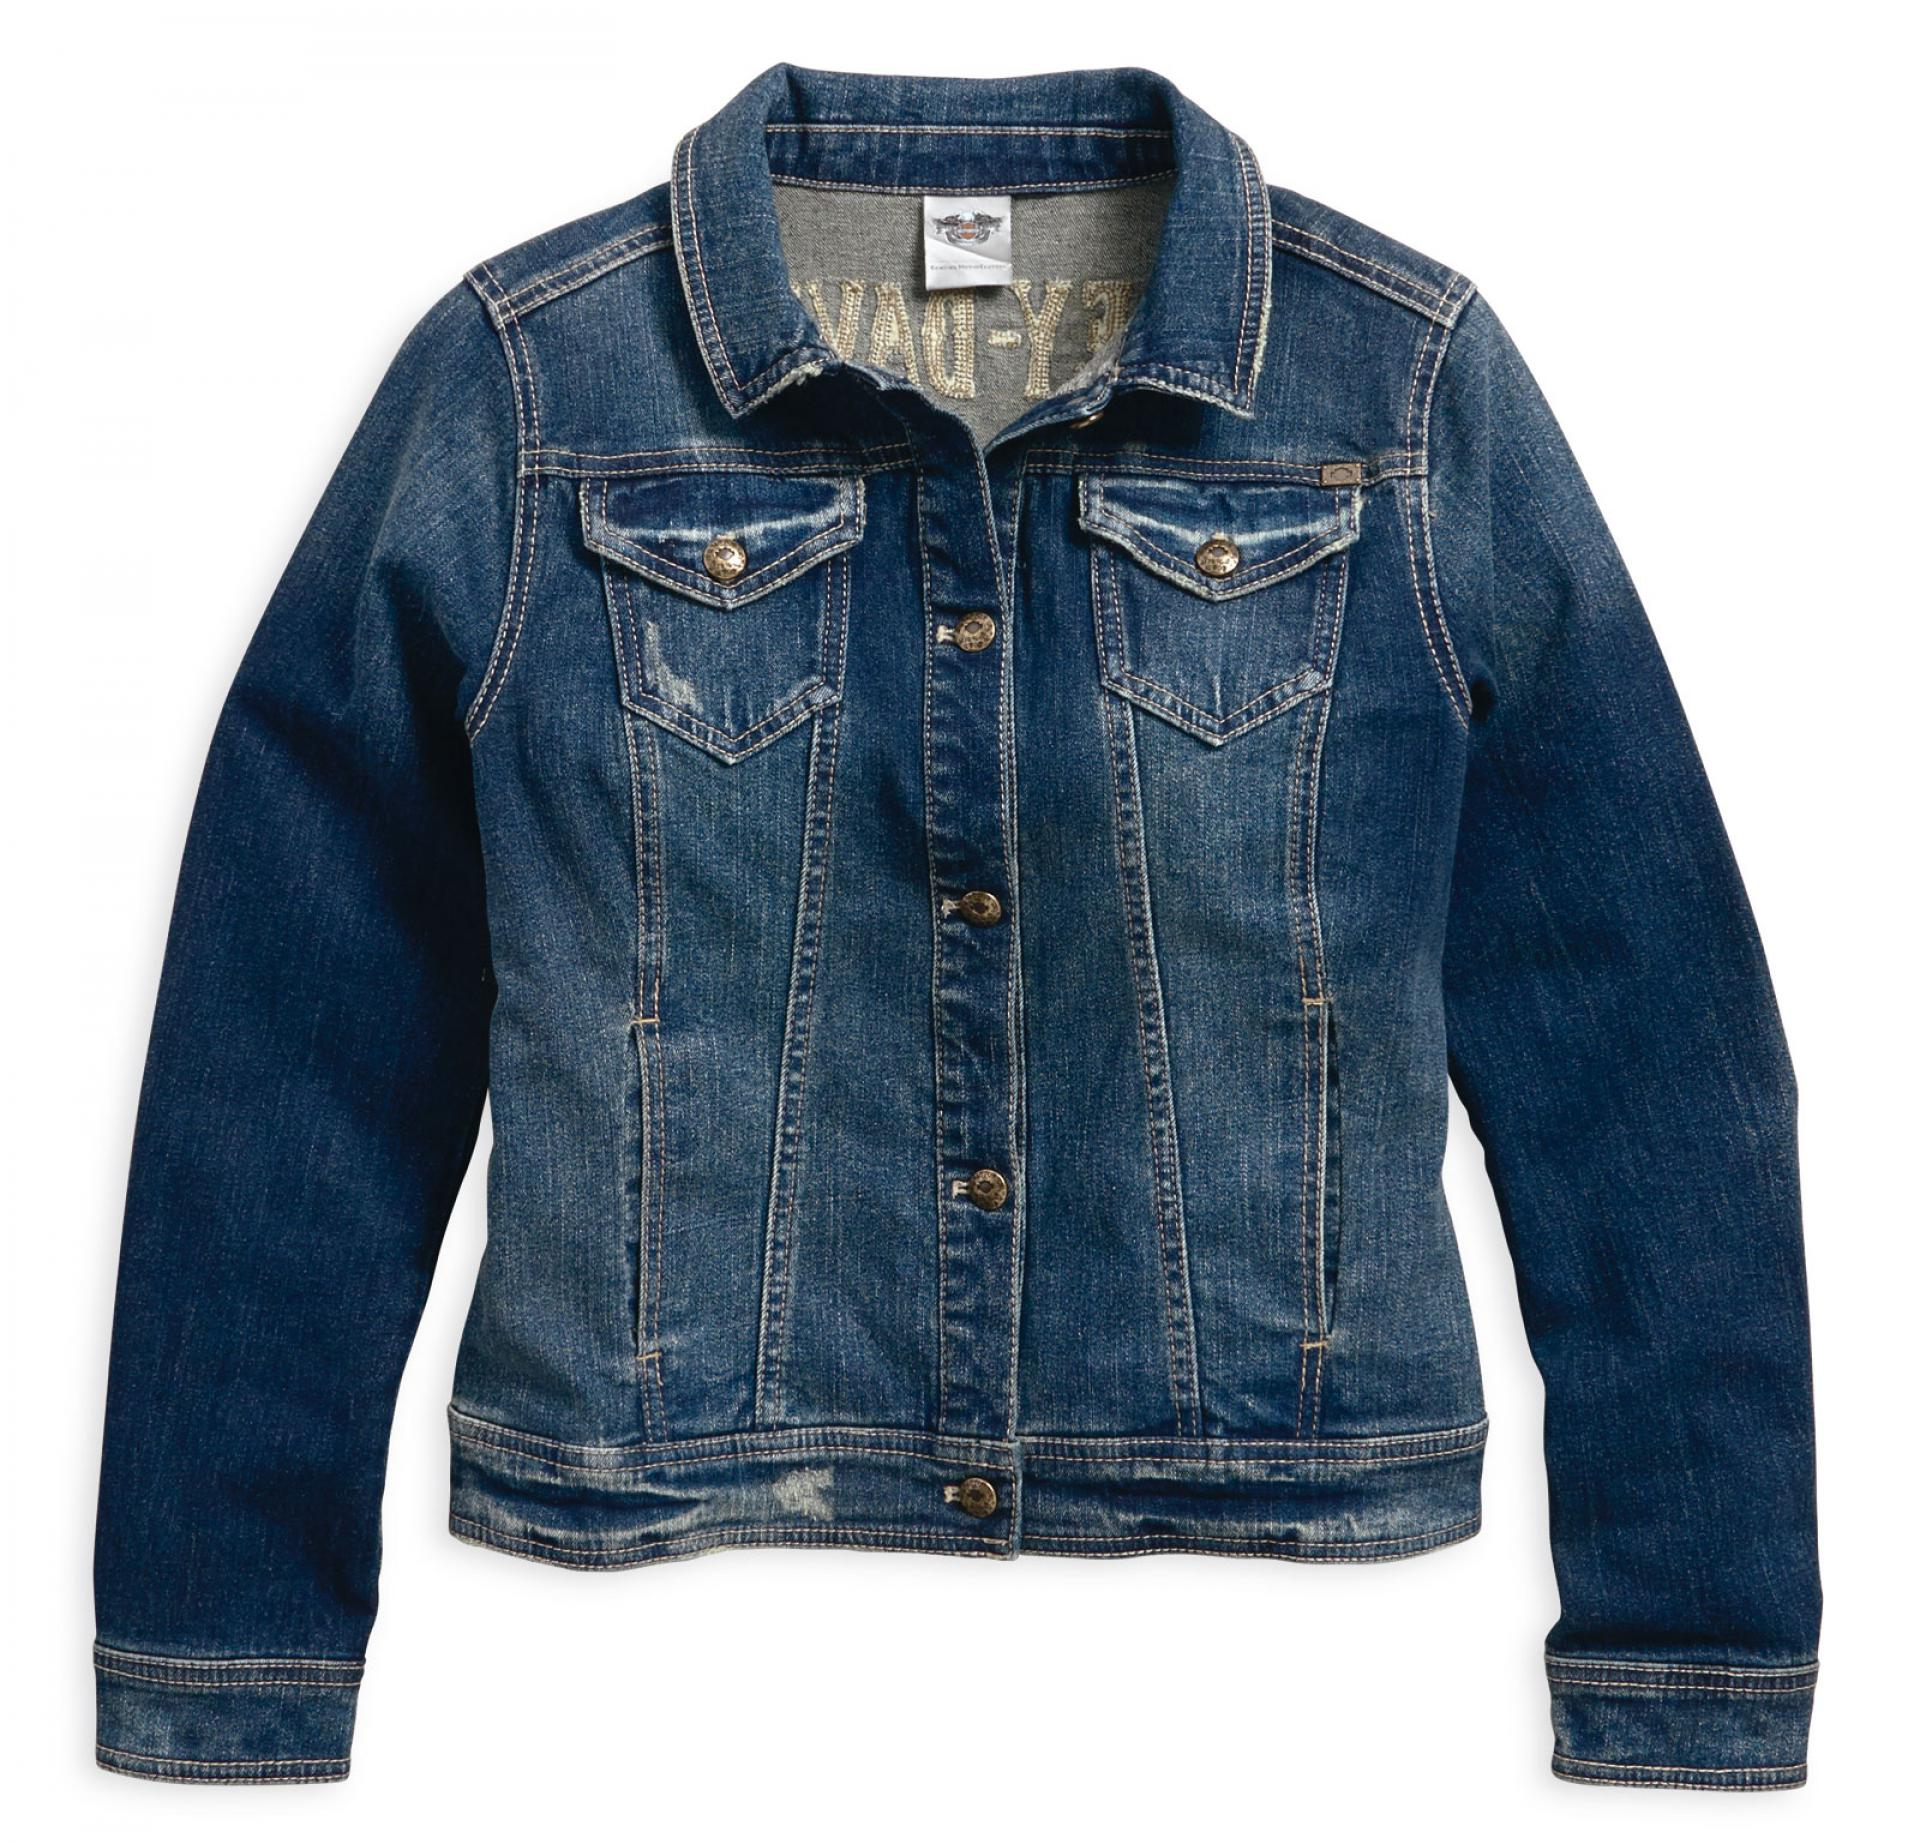 JACKET-DENIM,STUD/RHINESTONE,B